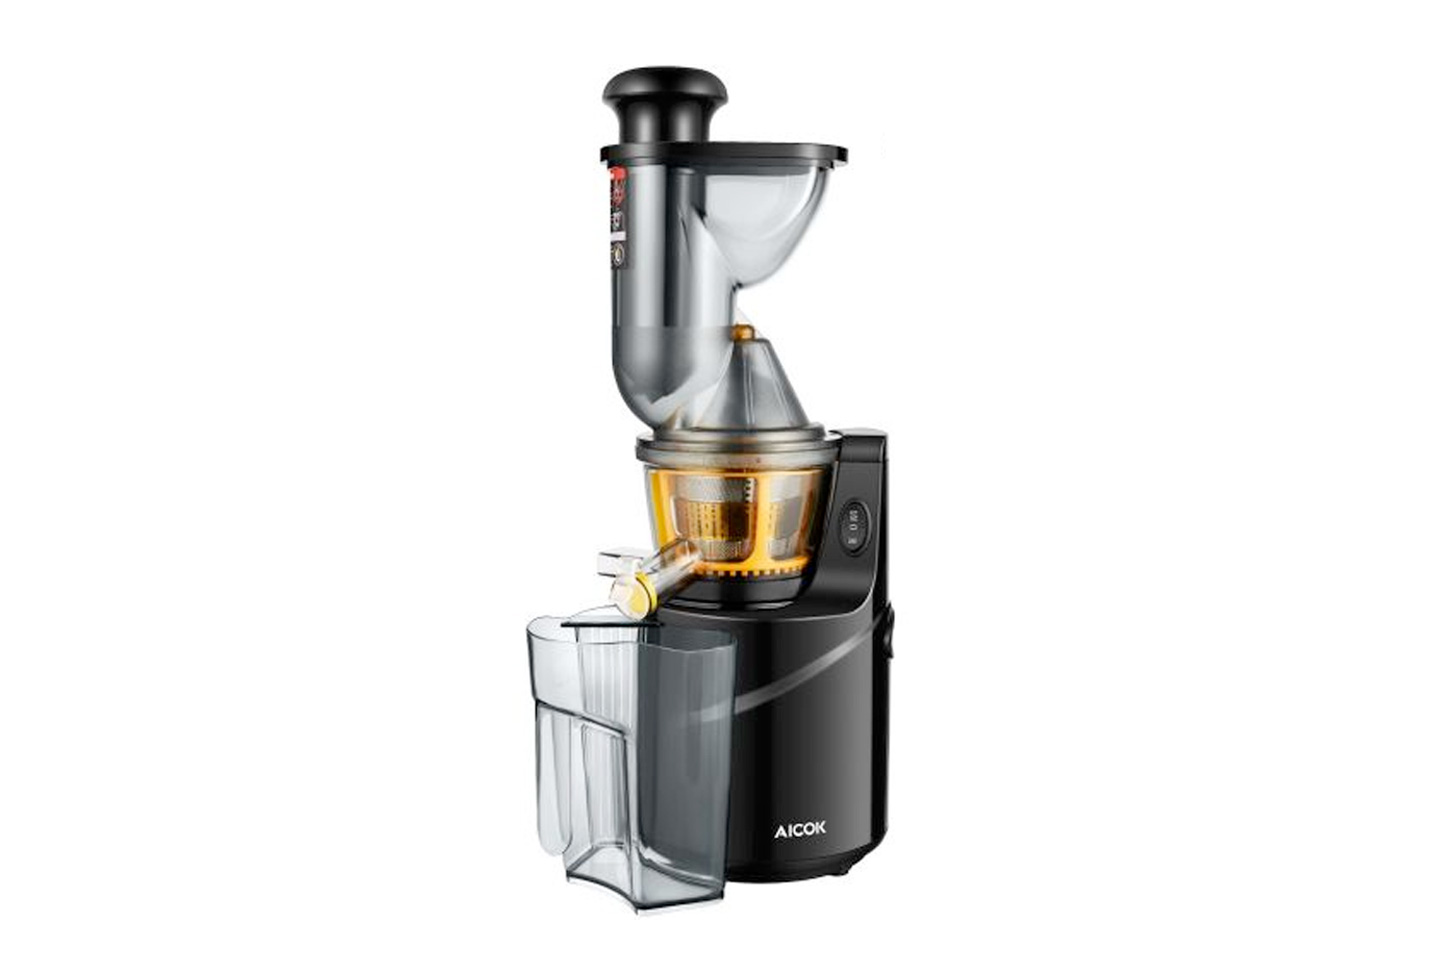 AICOK SD60K Wide Mouth Vertical Slow Juicer Review | HeartyBlends.co